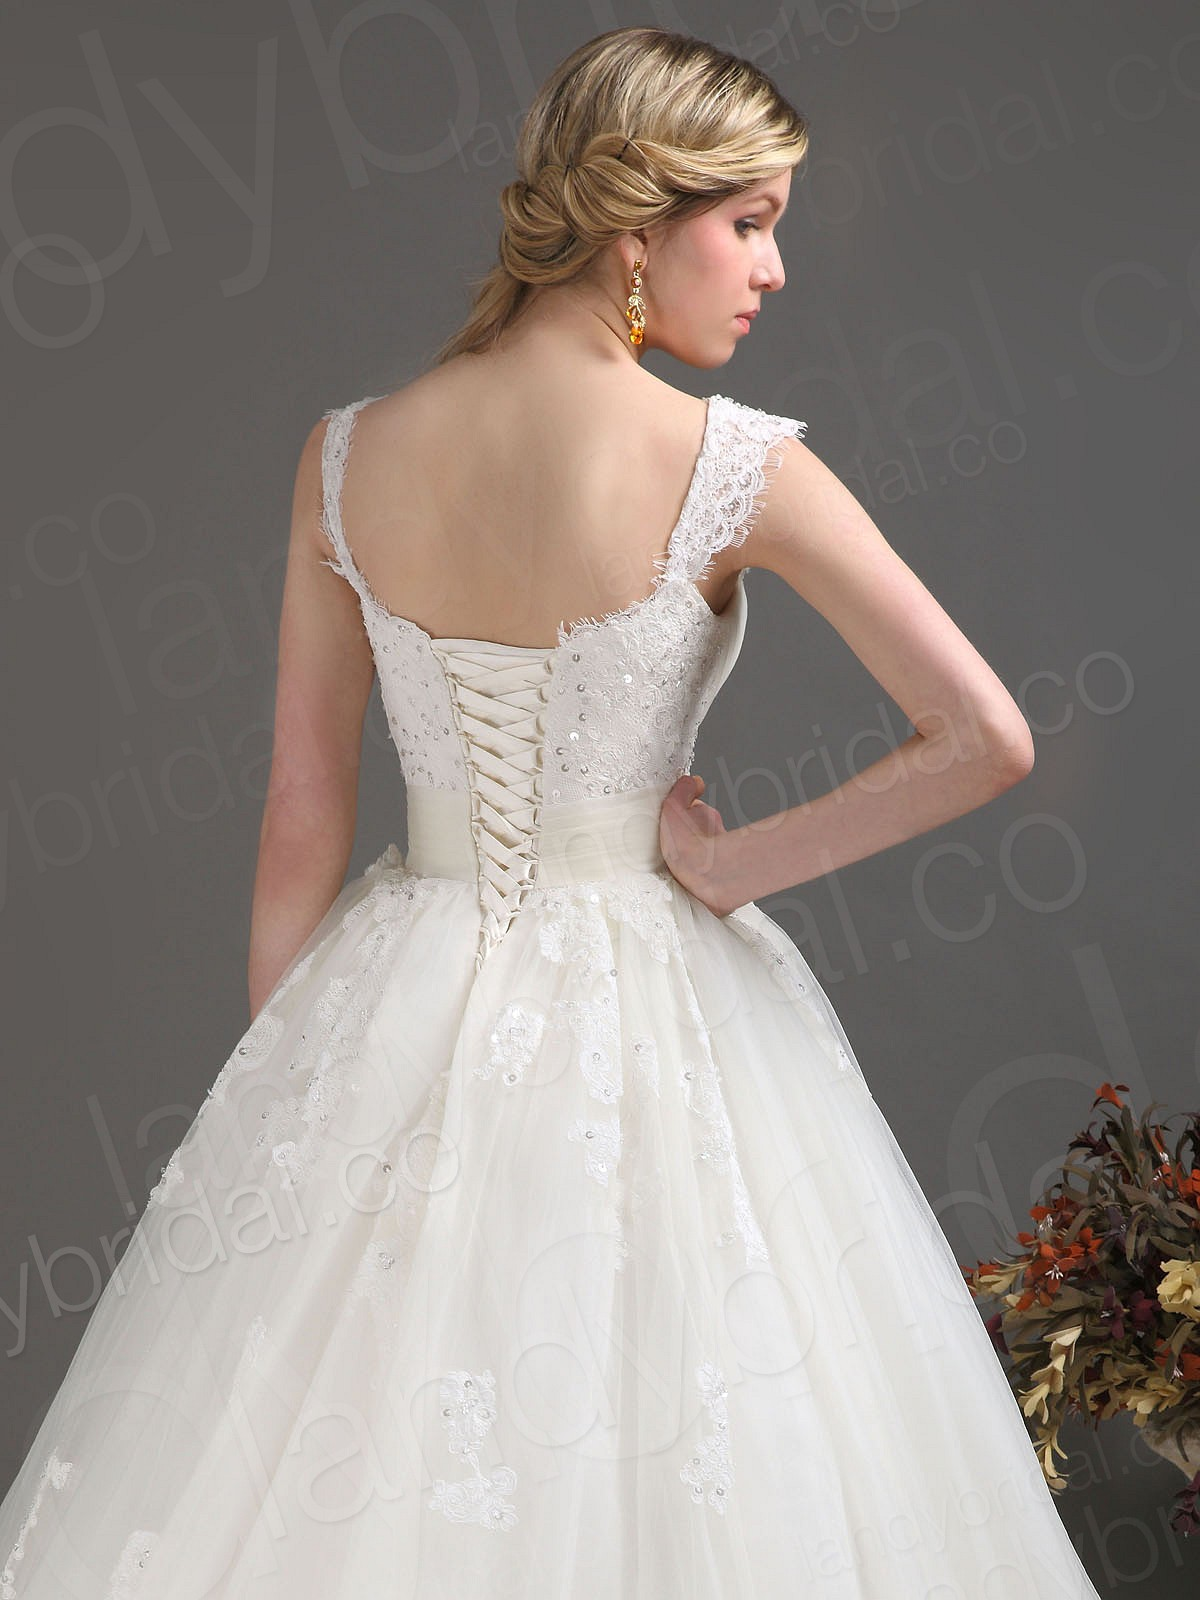 Wedding Dress Short Corset : Wedding dresses lace corset short